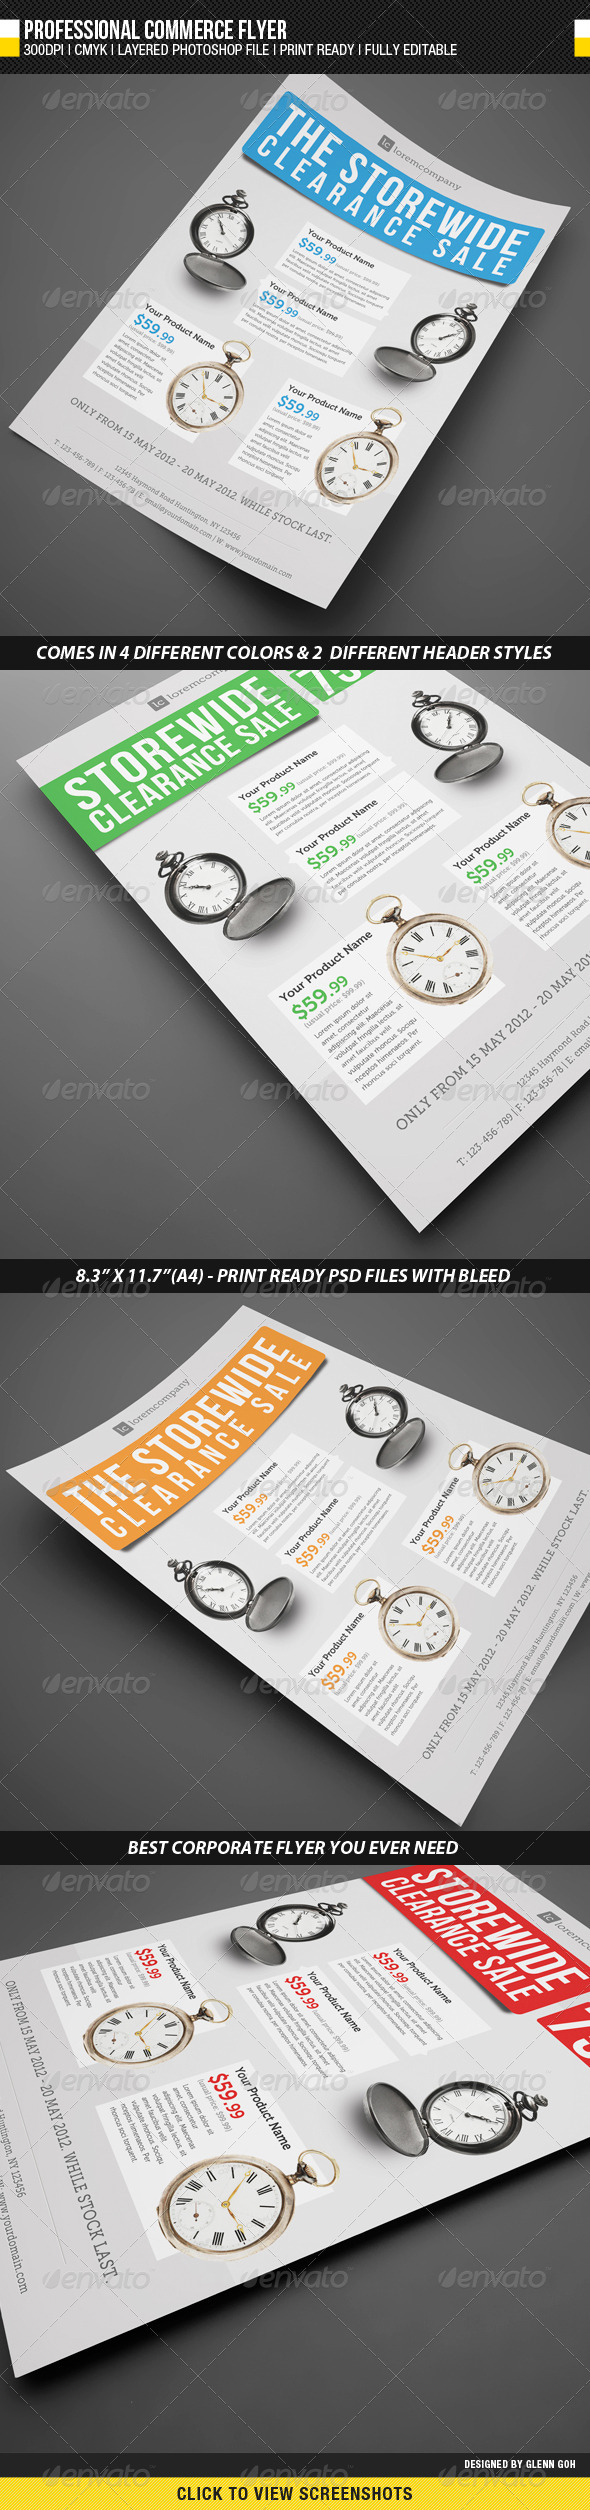 GraphicRiver Professional Commerce Flyer 2274760